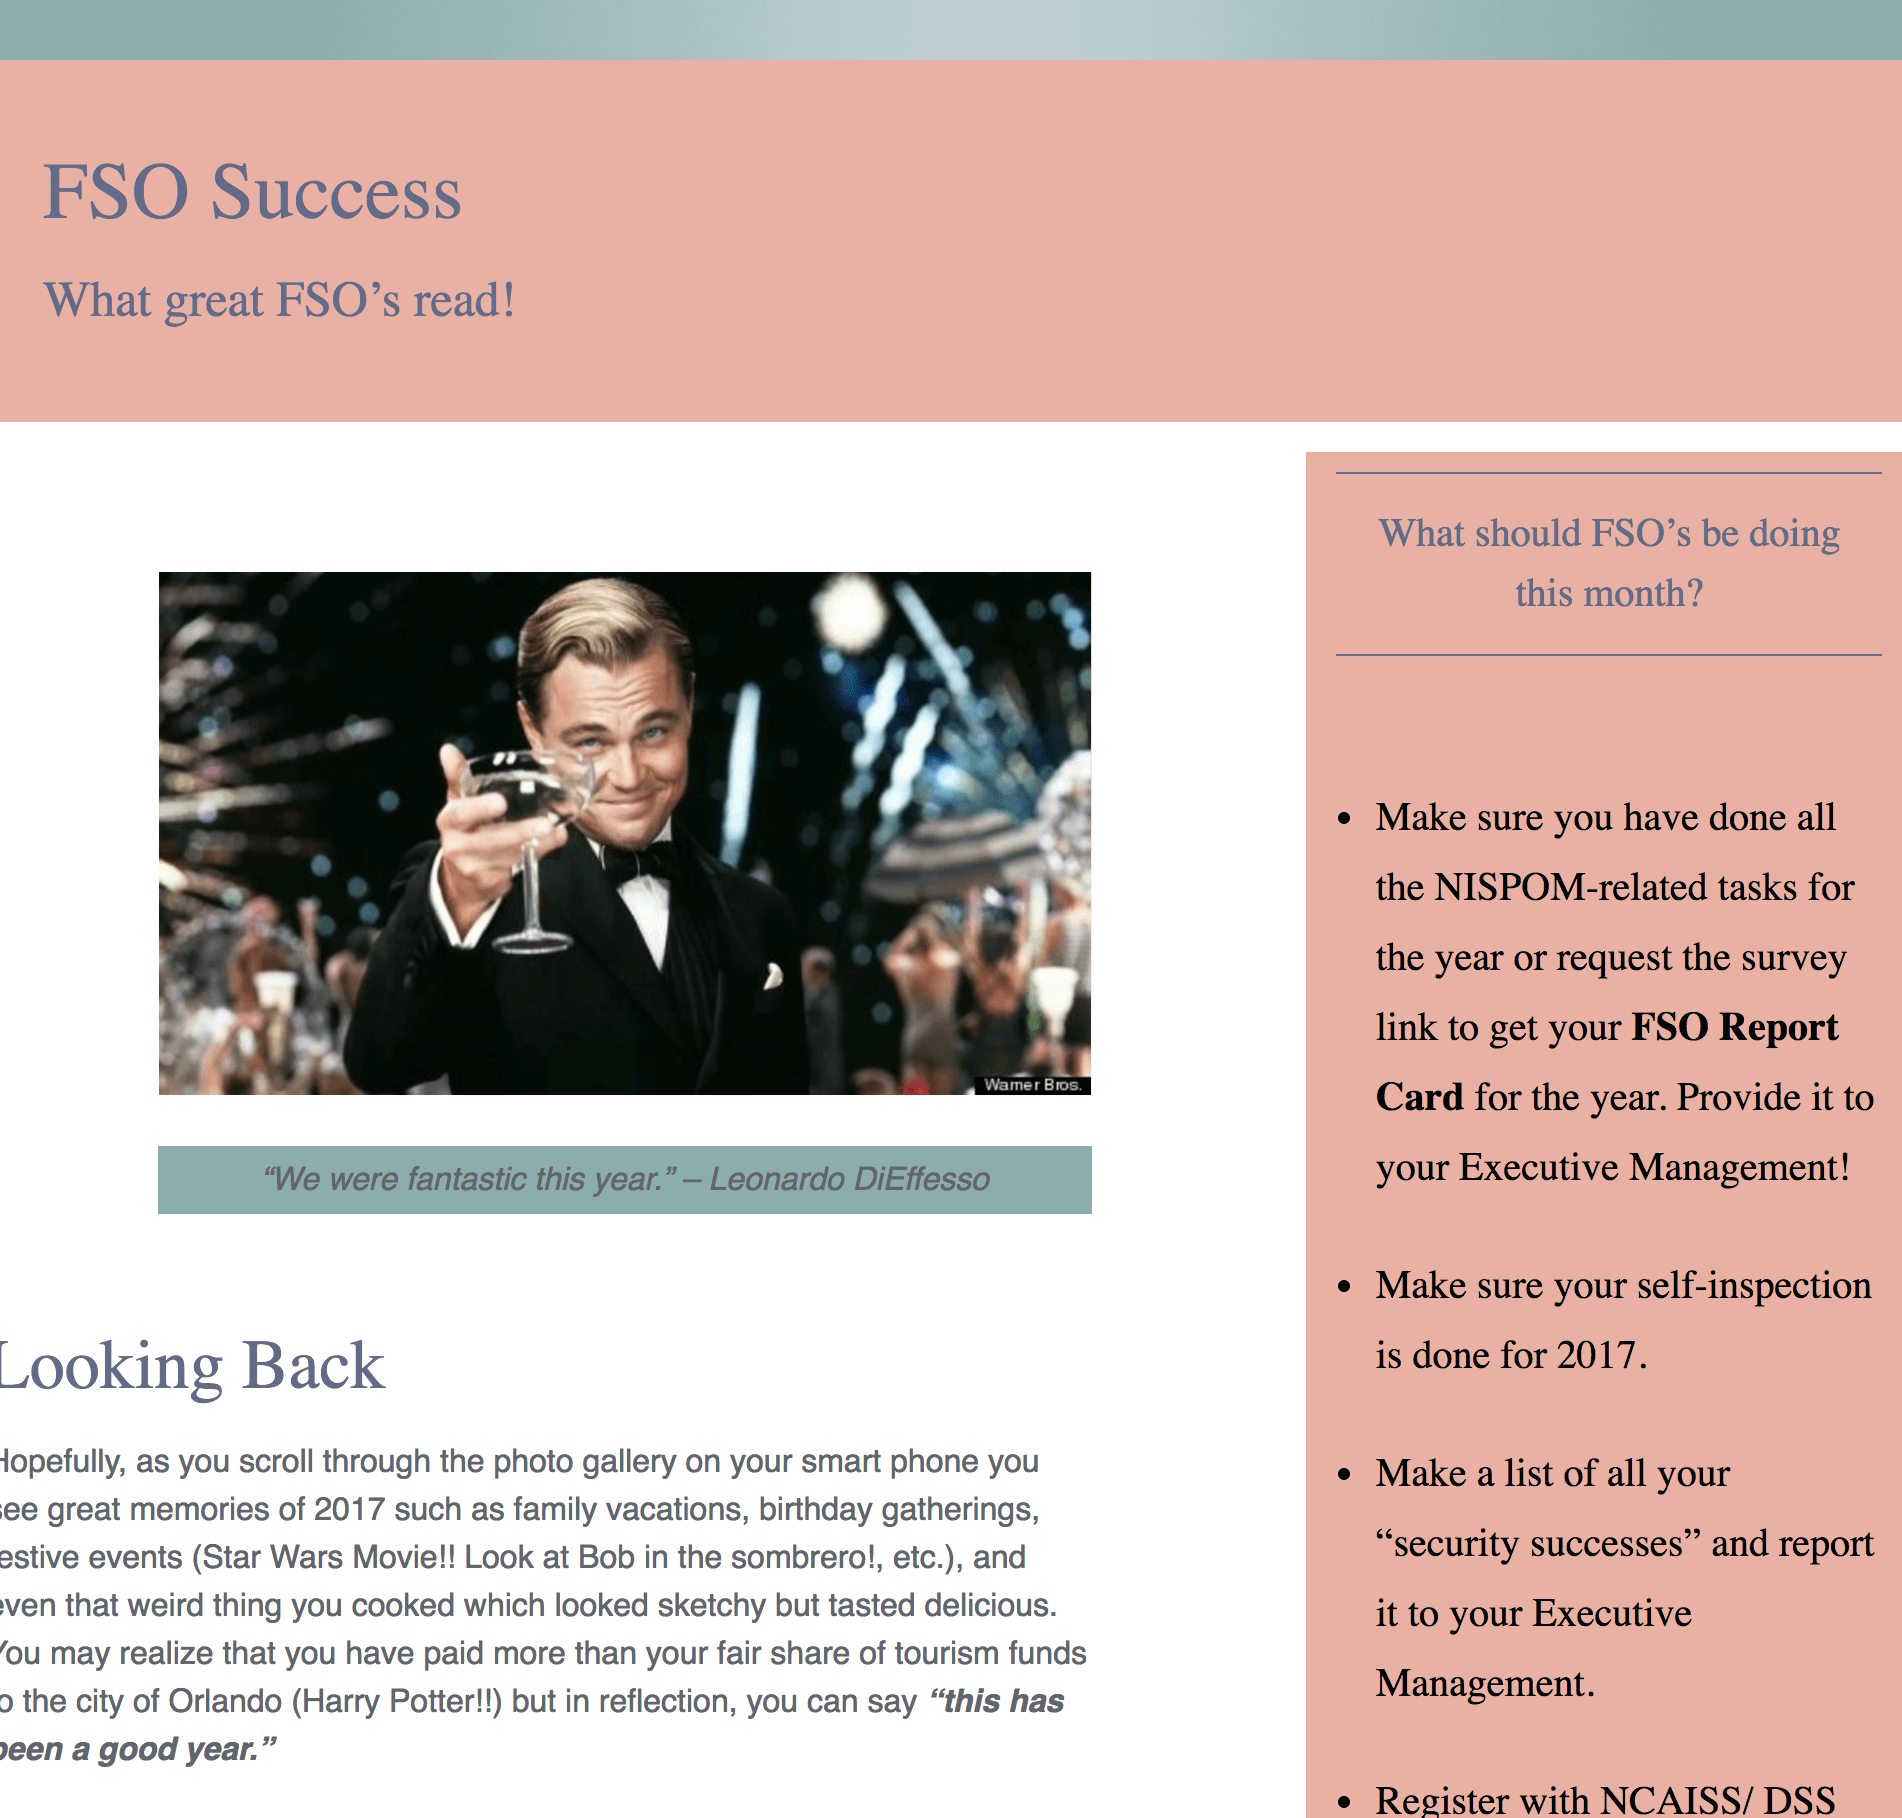 FSO Success - January Newsletter - The FSO Pro